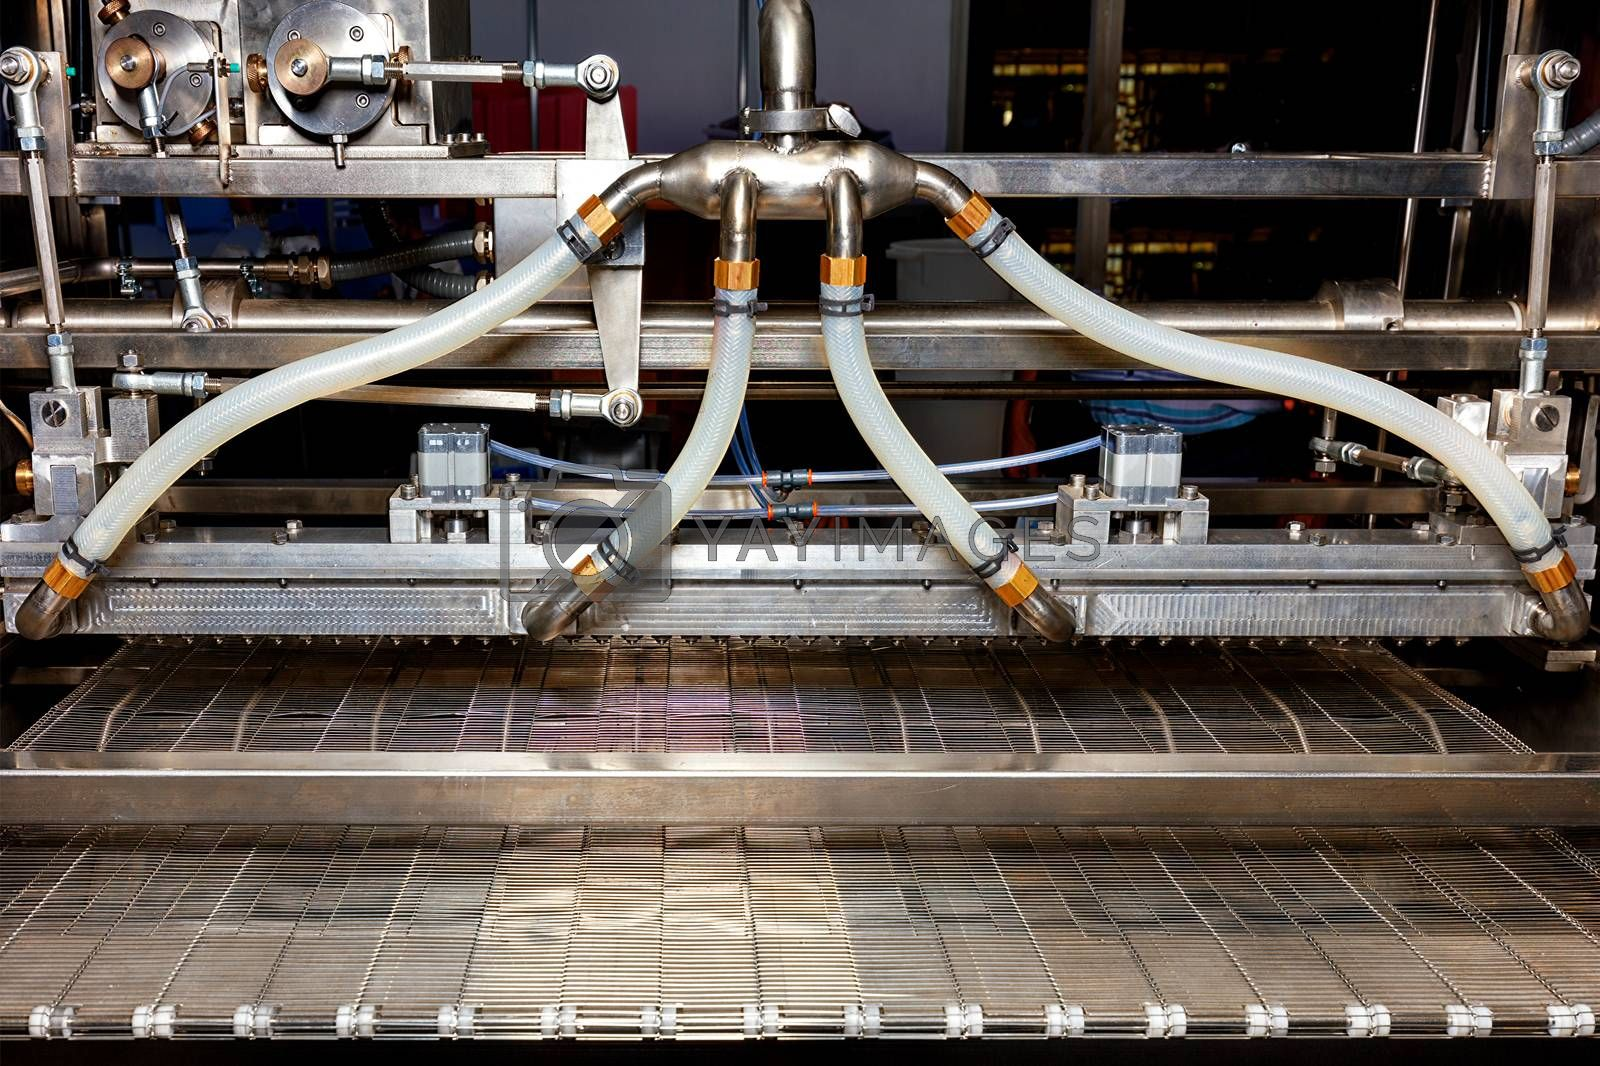 Spraying mechanism made of stainless steel on the conveyor of a production line in the food industry.